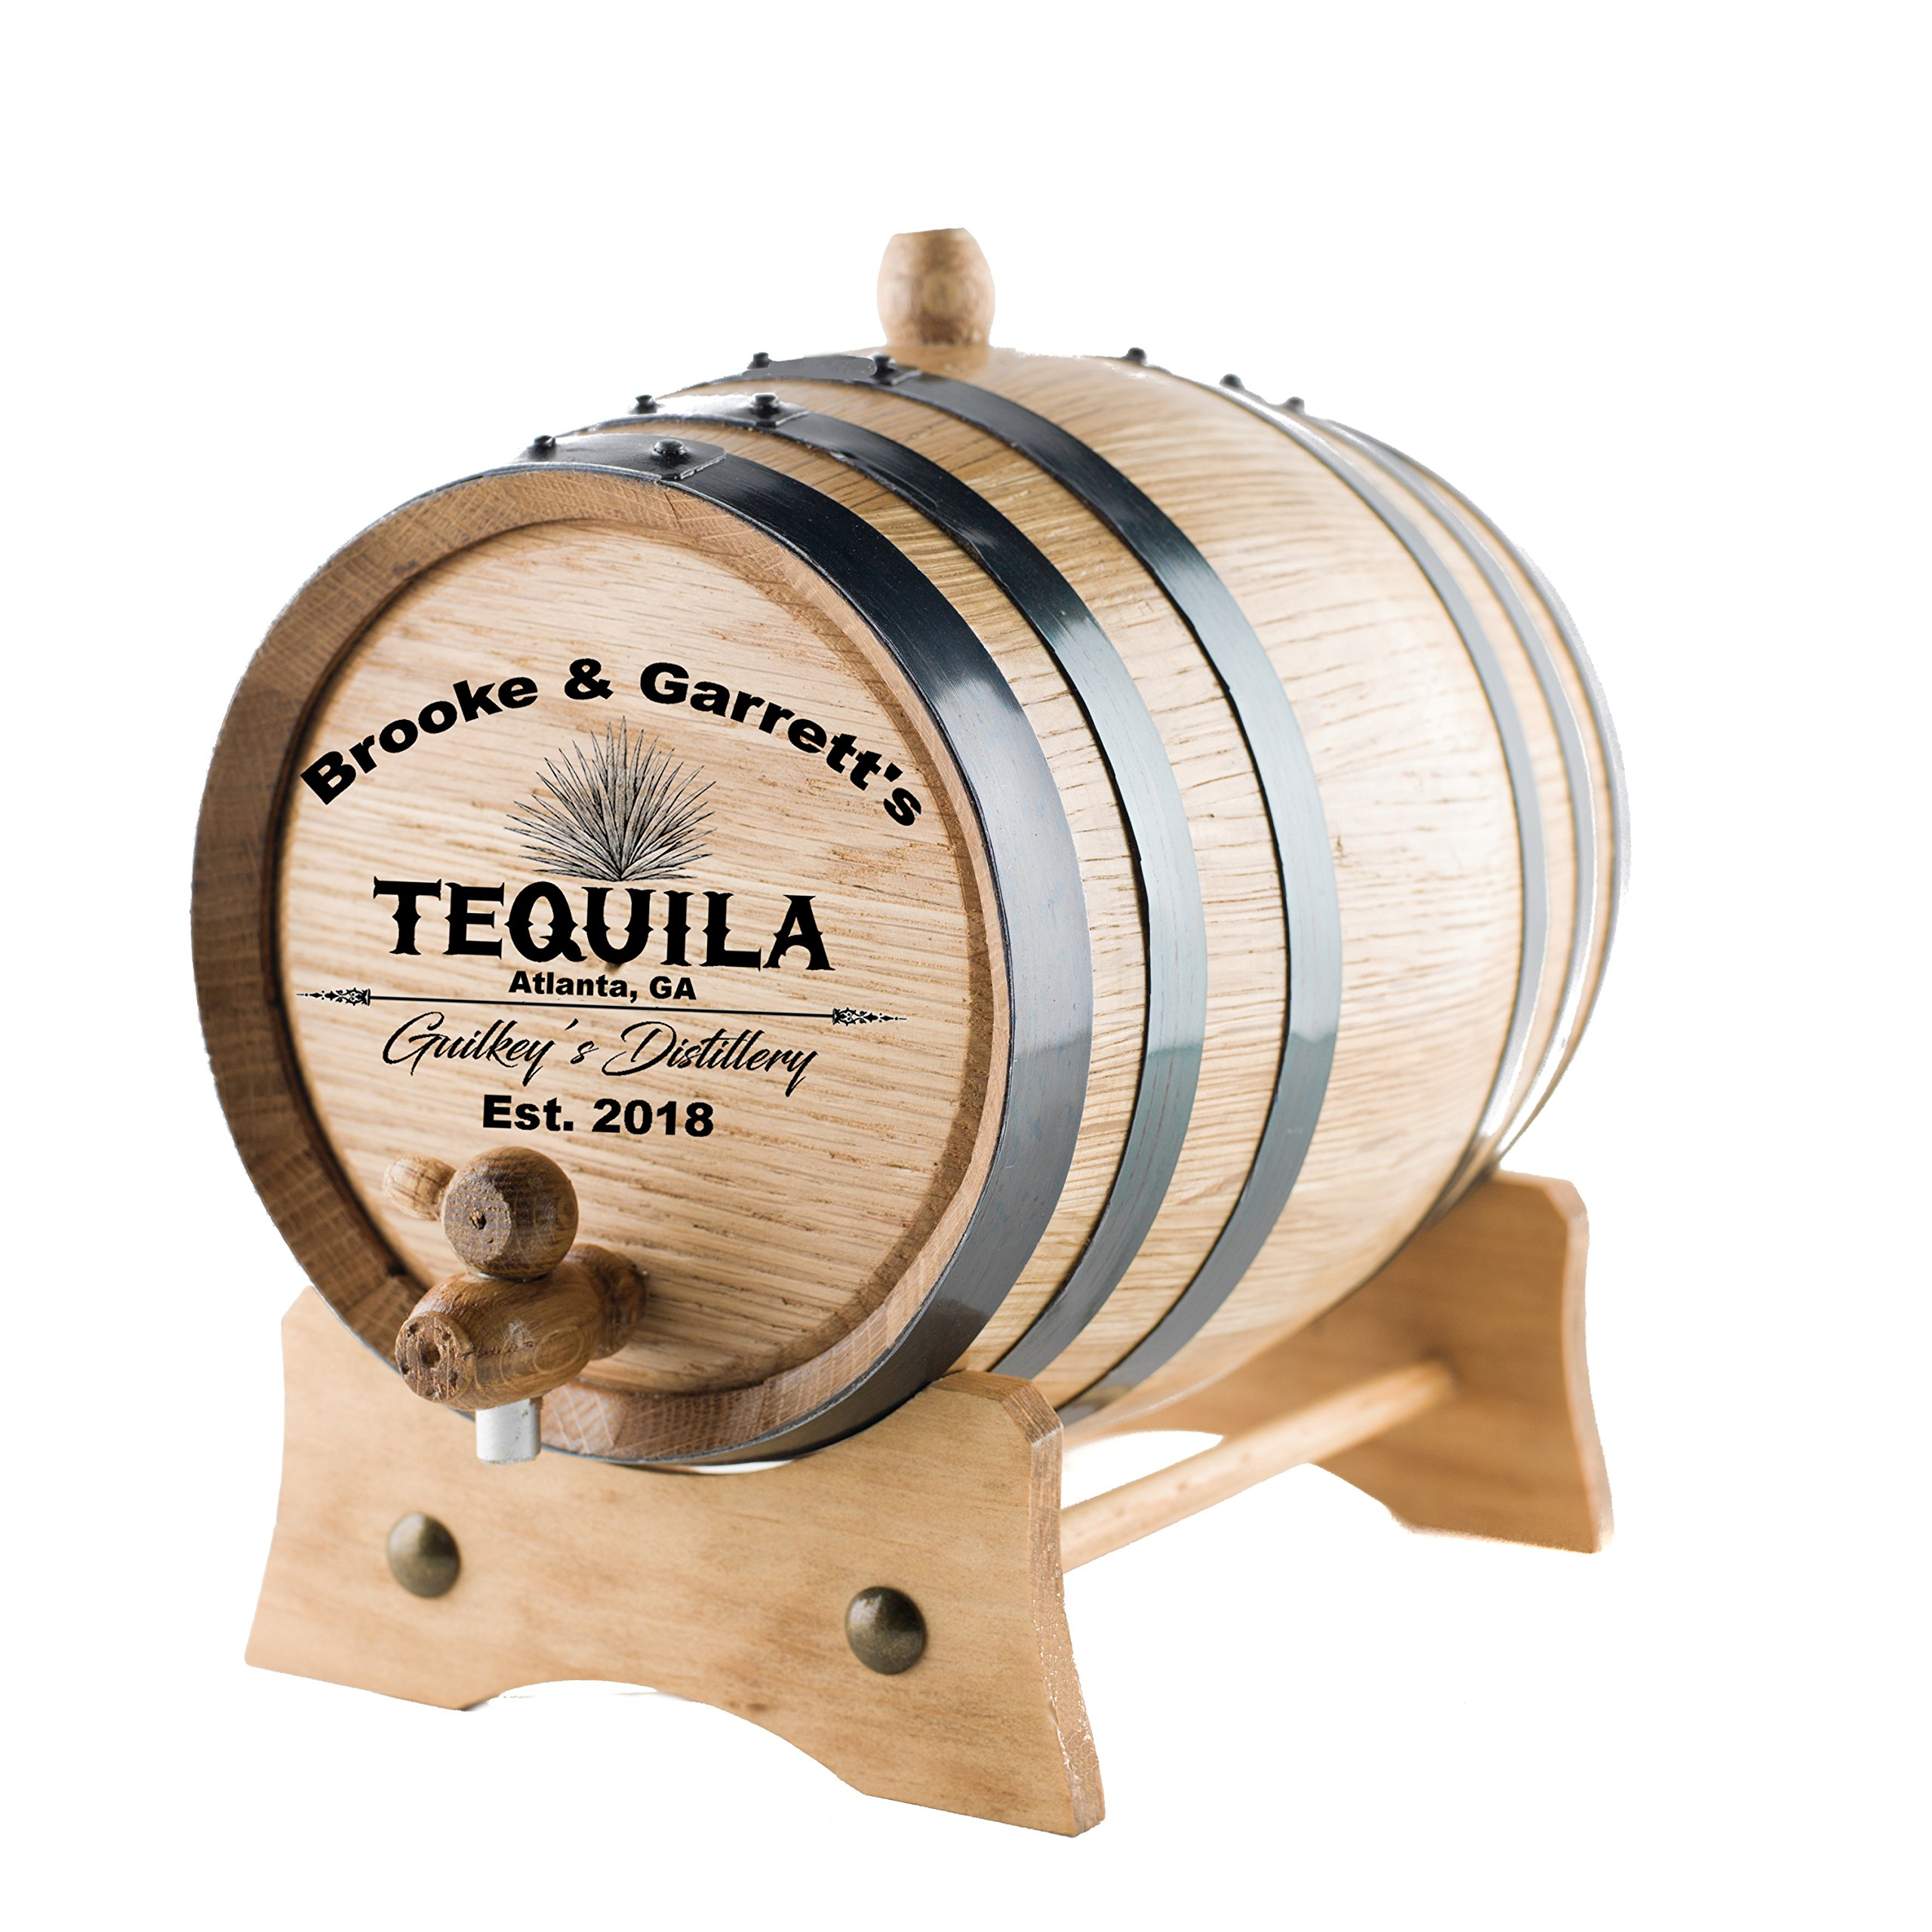 Personalized Tequila Oak Barrel   Custom Engraved American White Oak Aging Barrel - Age your own Tequila, Whiskey, Rum, Wine, Beer, Vinegar. (10 Liters) by Sofia's Findings